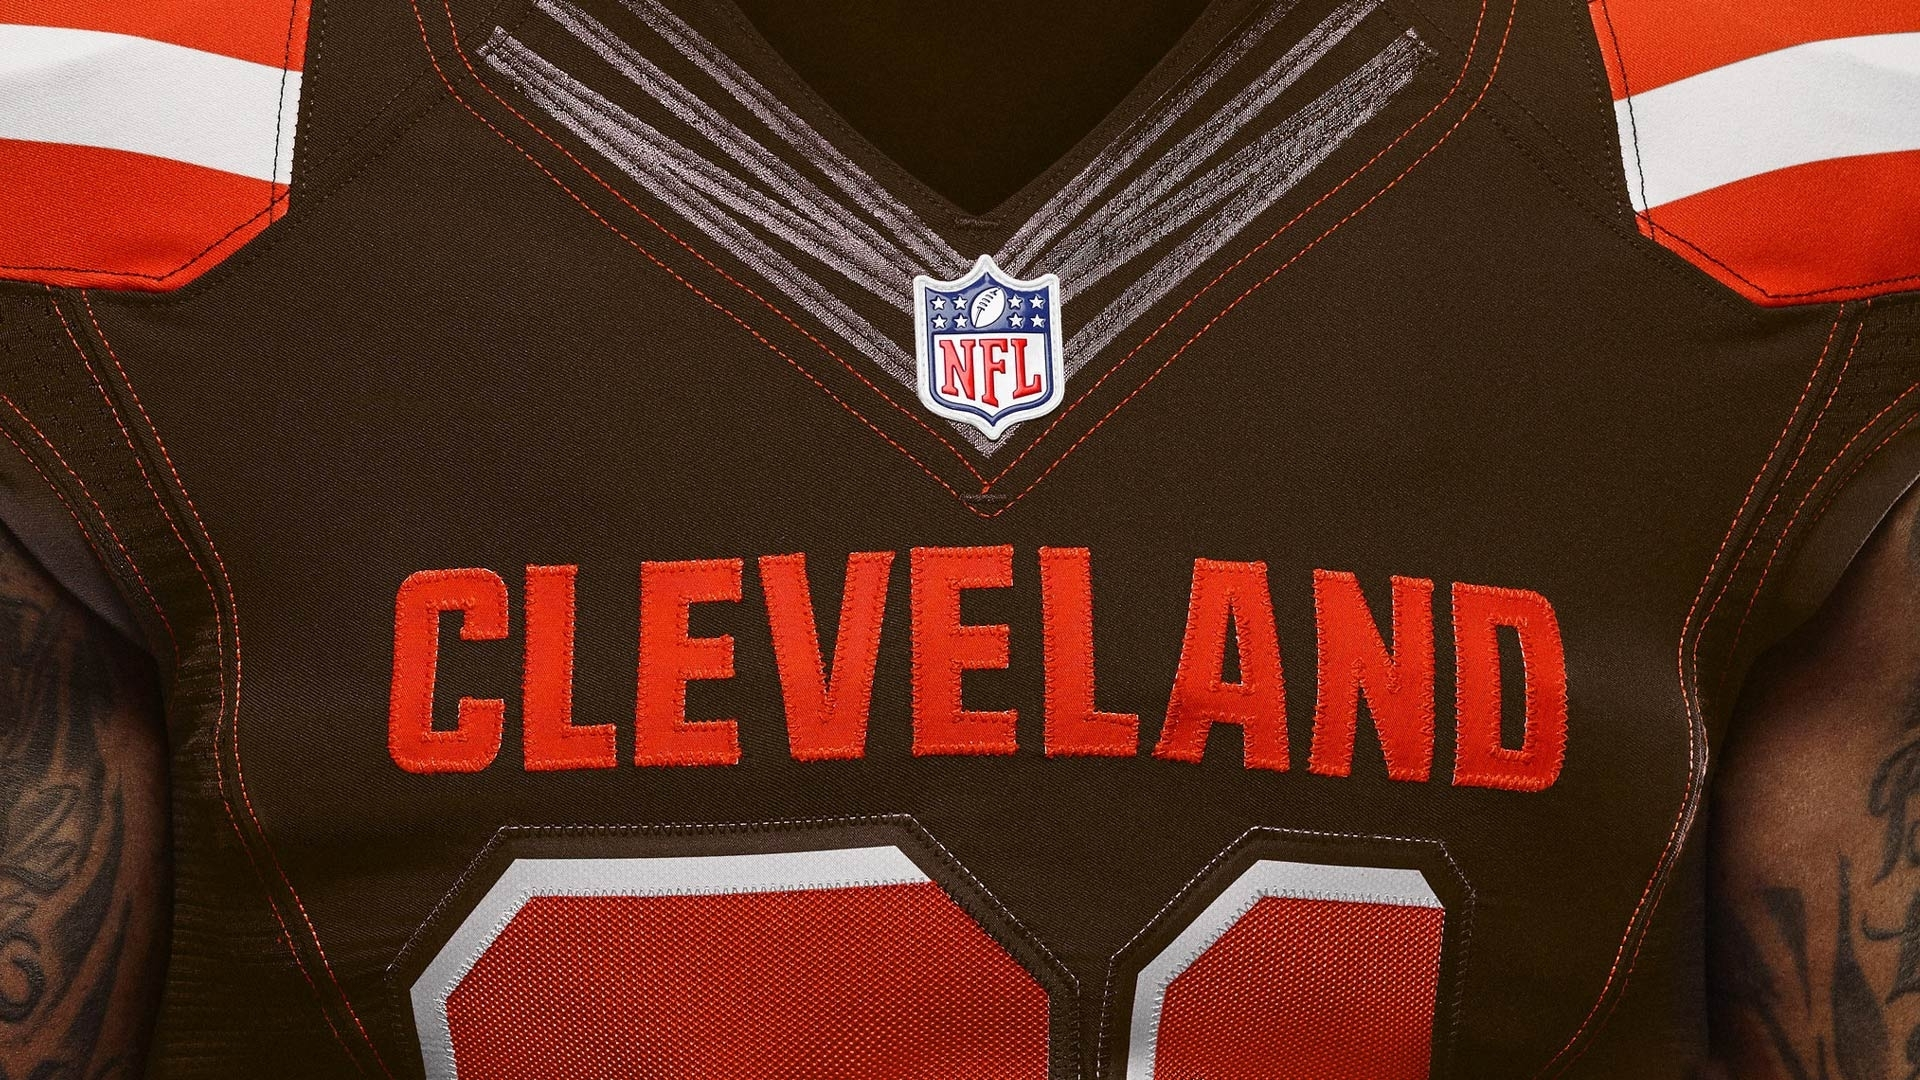 cleveland browns wallpapers hd - wallpaper.wiki